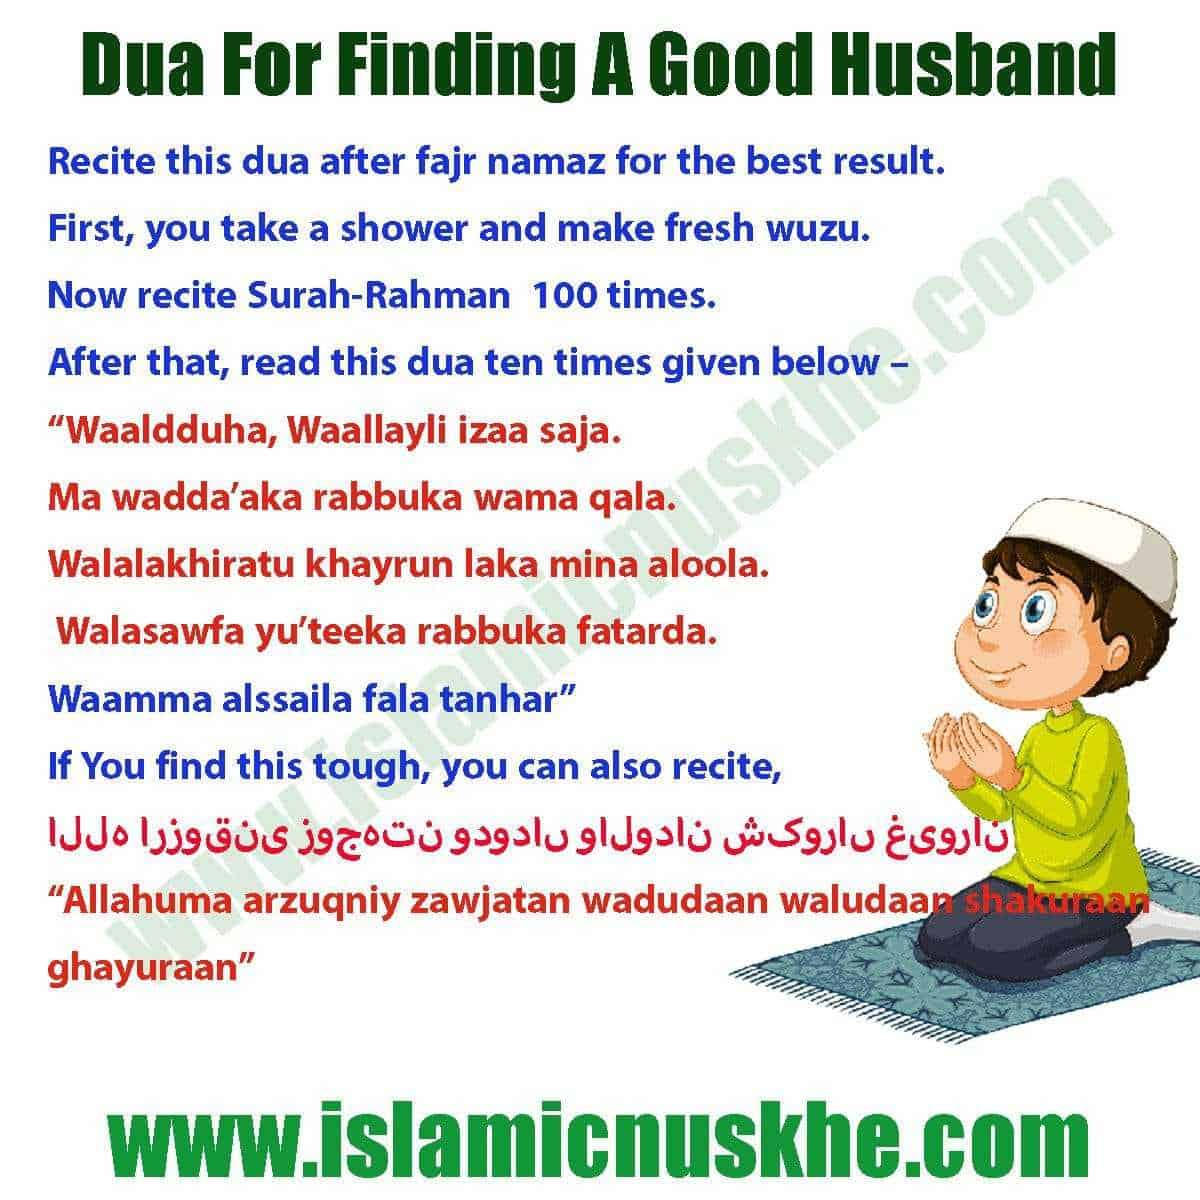 Here is Dua For Finding A Good Husband Step by Step